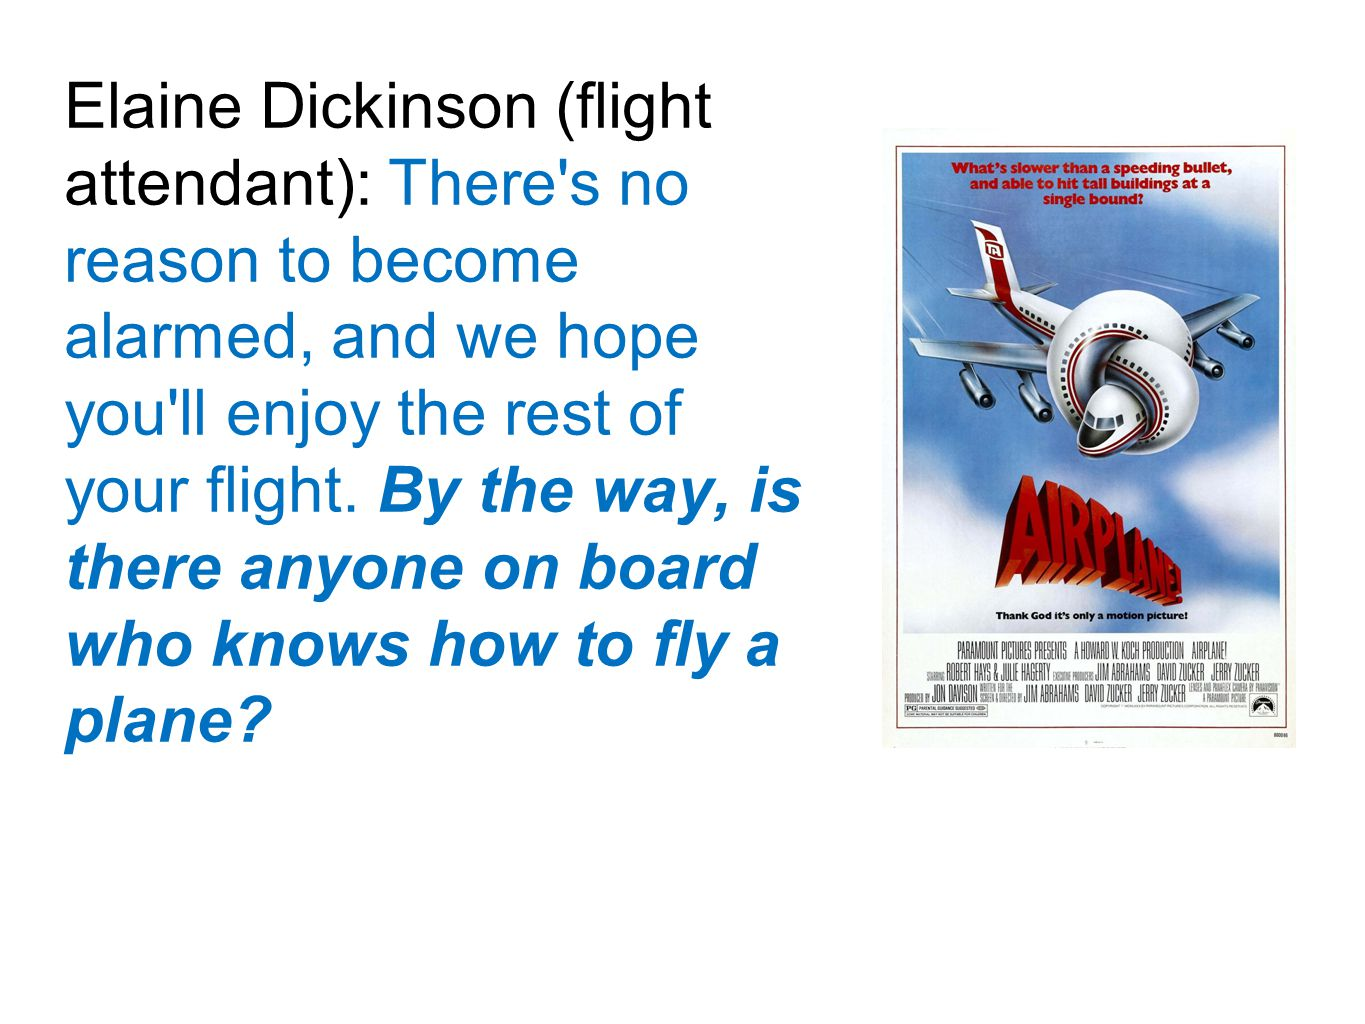 Elaine Dickinson (flight attendant): There s no reason to become alarmed, and we hope you ll enjoy the rest of your flight.